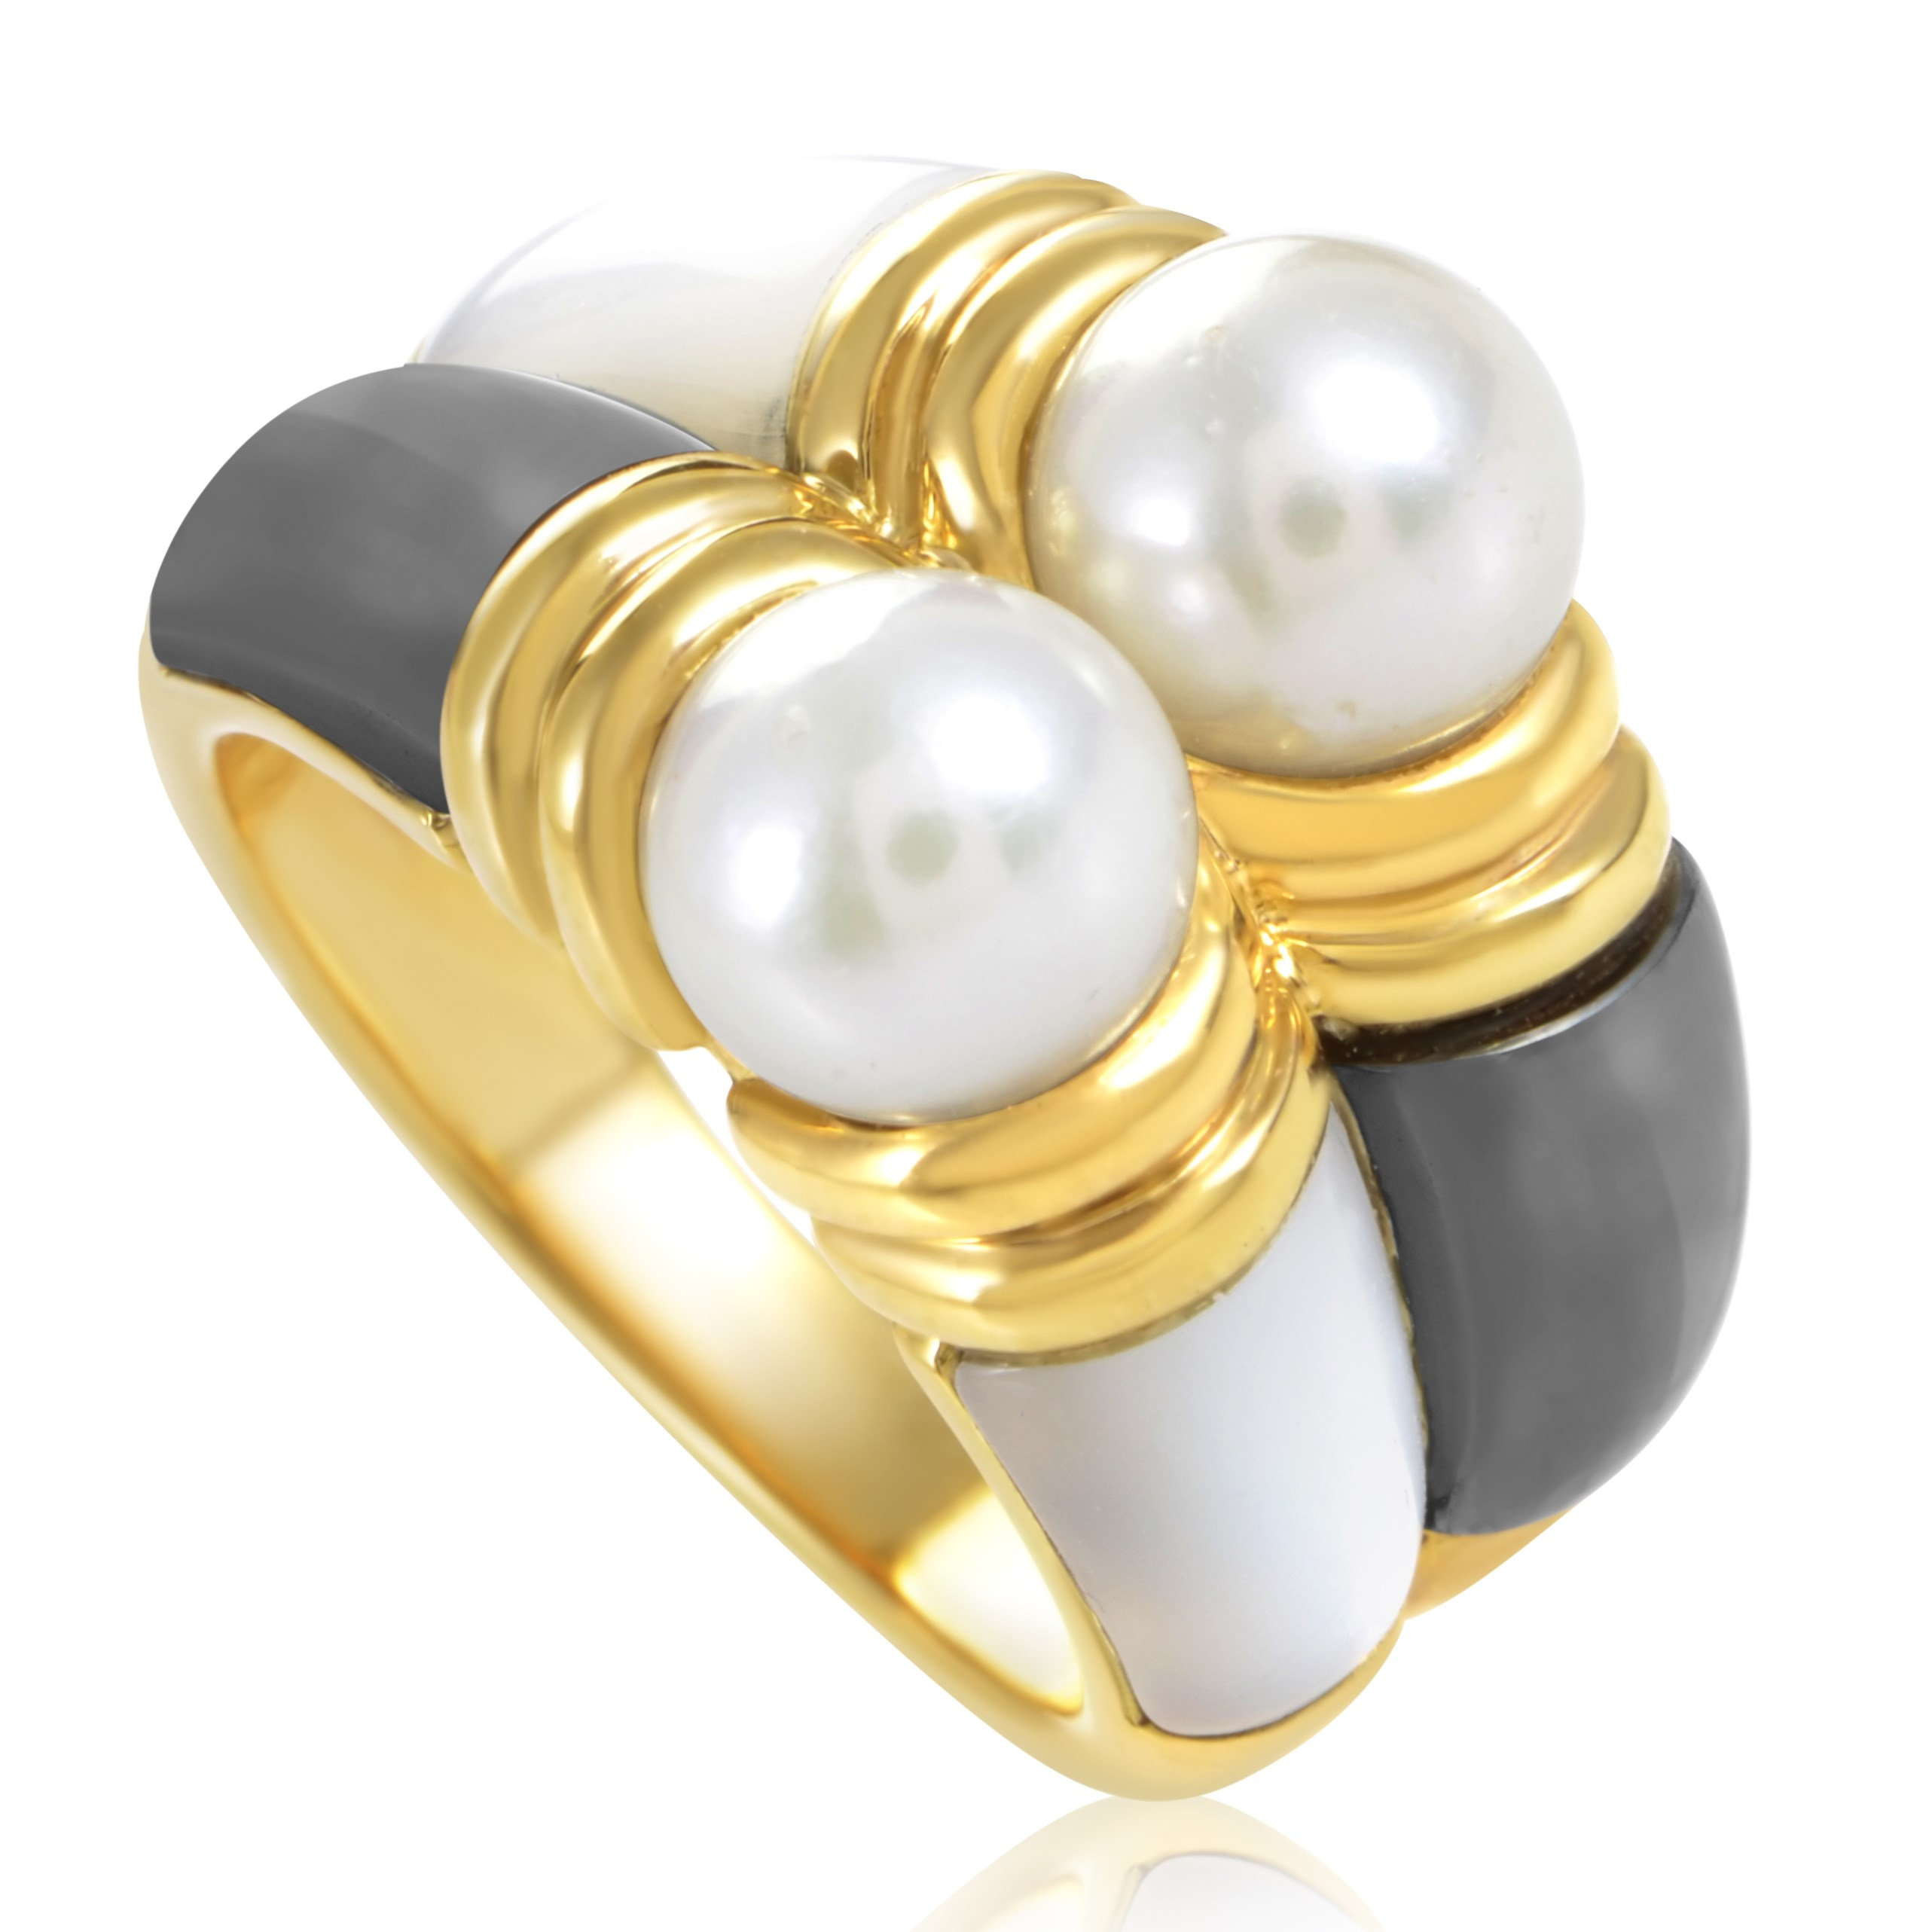 Bvlgari Women's 18K Yellow Gold Pearl, Mother Of Pearl and Hematite Ring AK1B3734